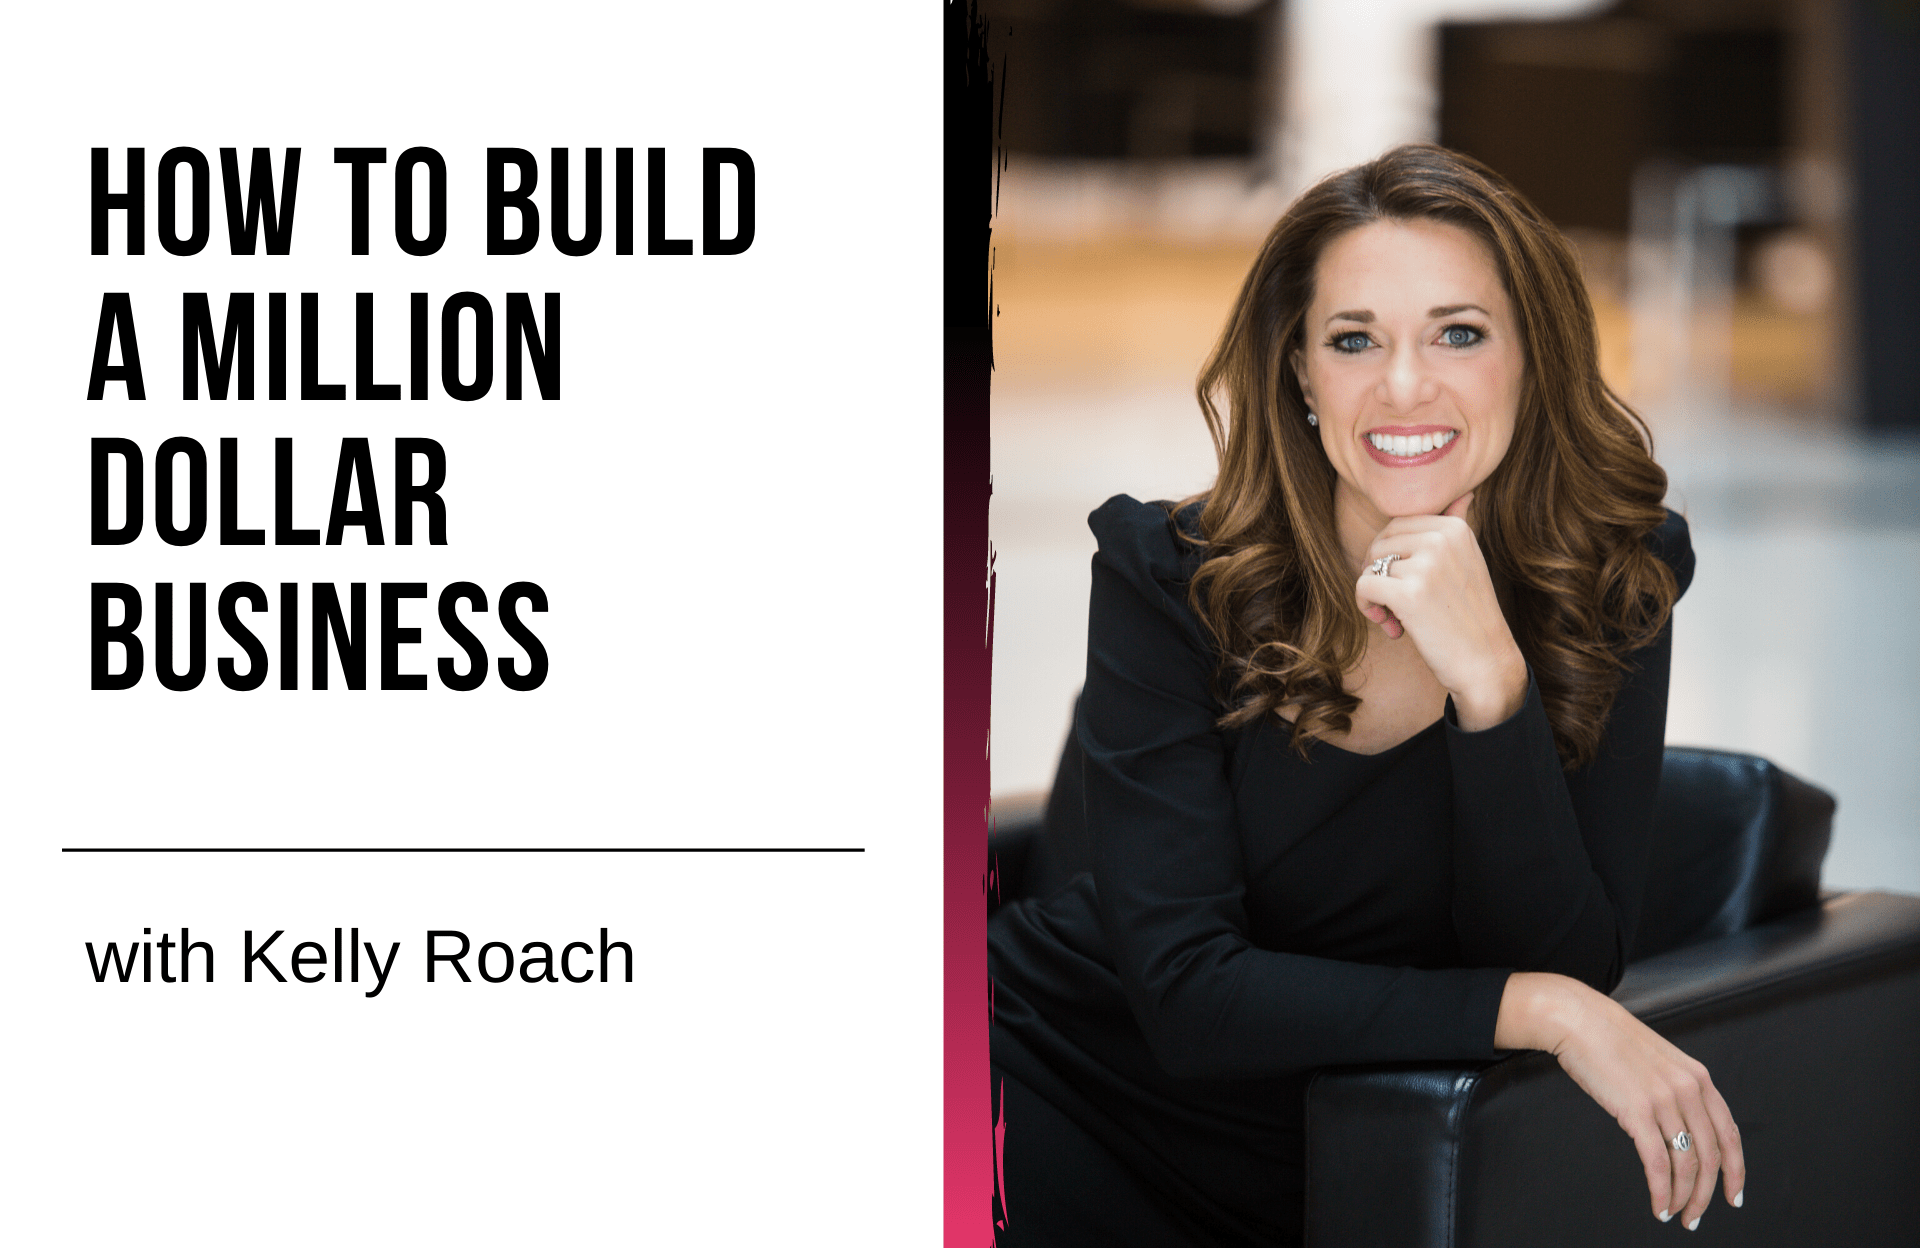 How to Build a Million Dollar Business with Kelly Roach